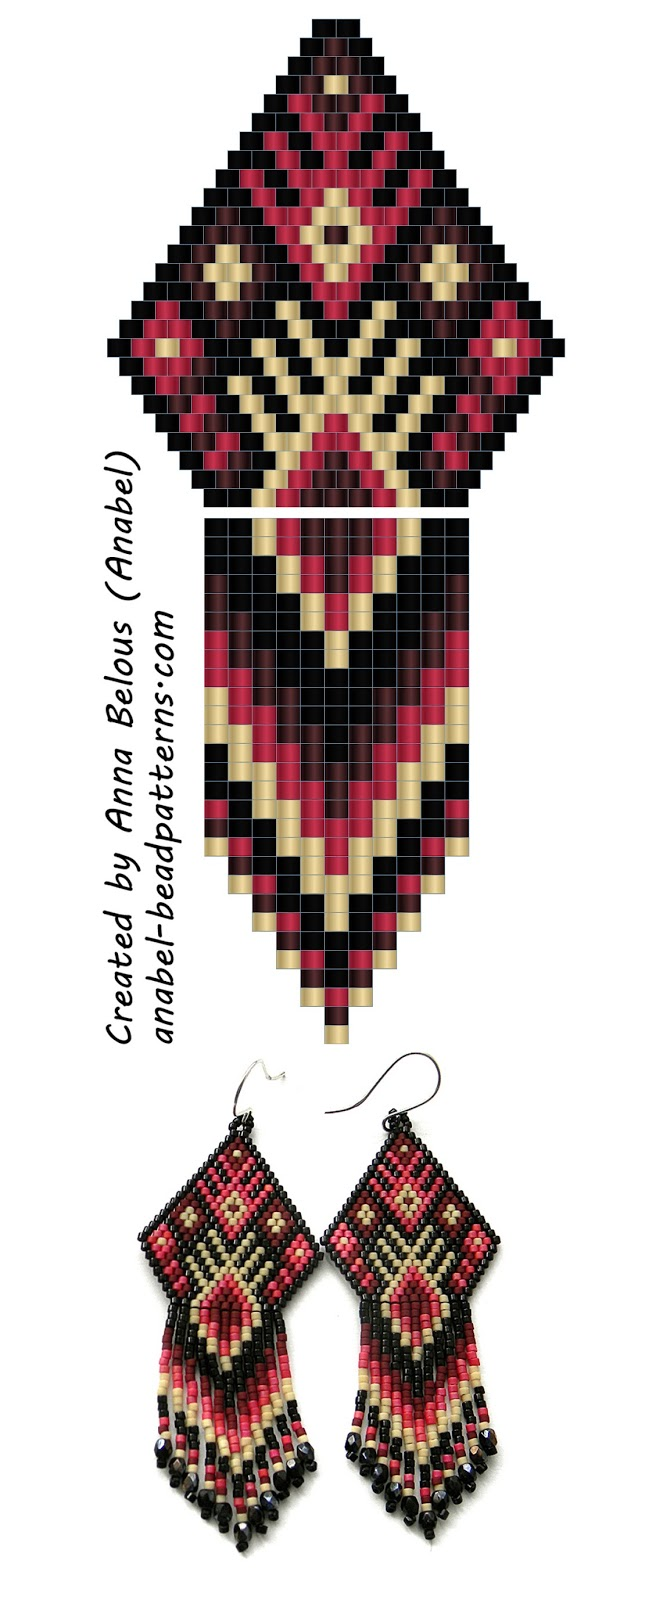 Схема серег из бисера - beaded earrings pattern